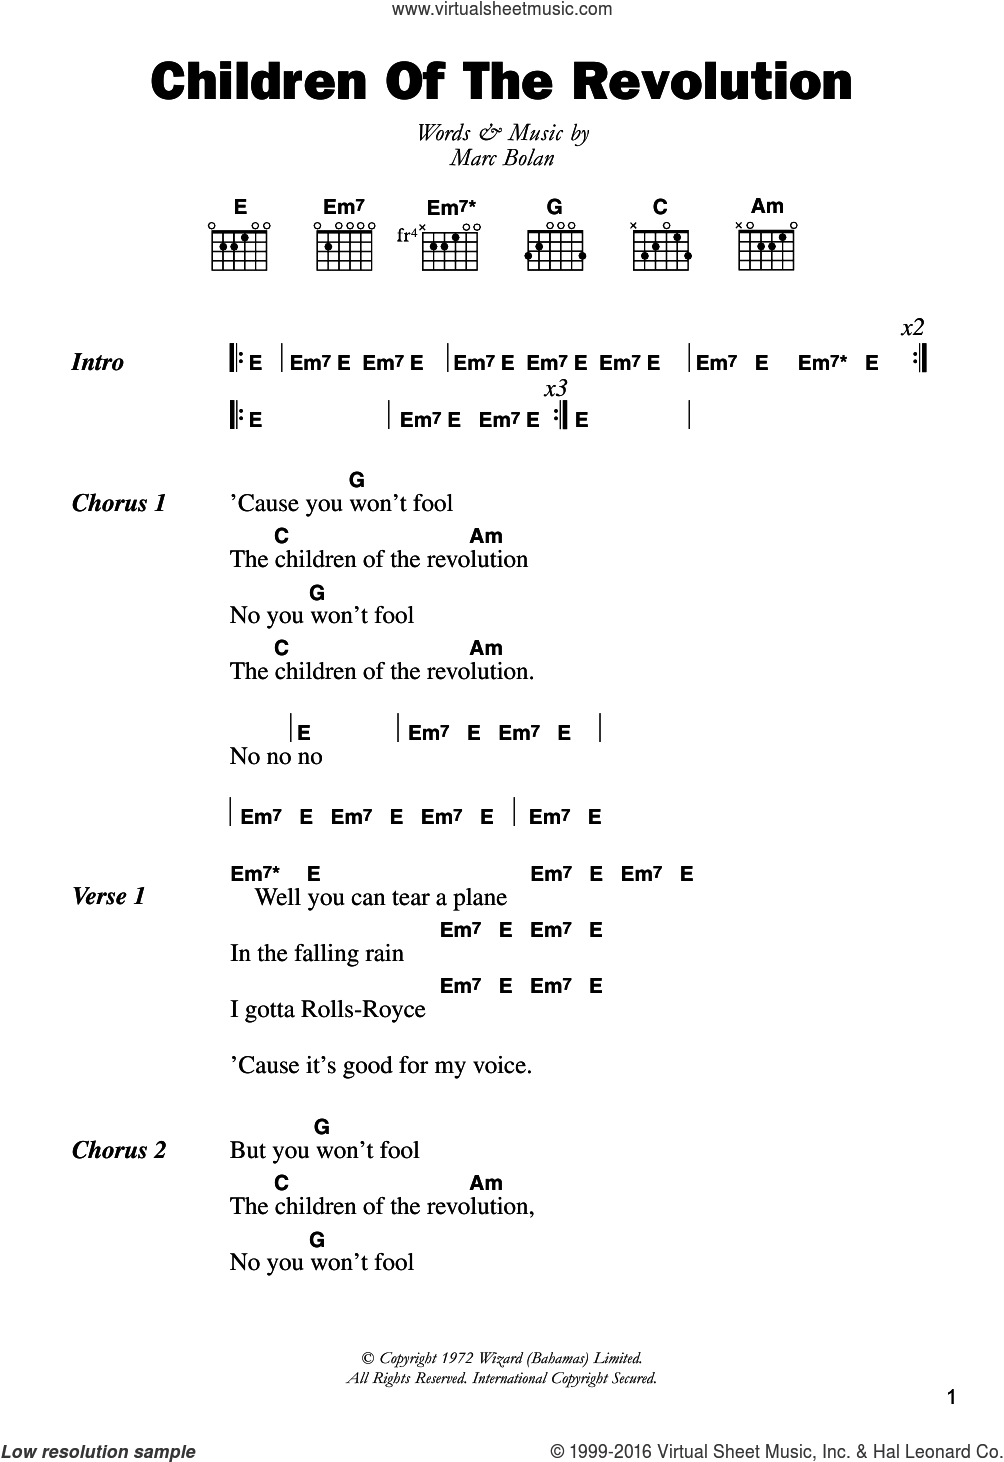 Children Of The Revolution sheet music for guitar (chords) by T. Rex